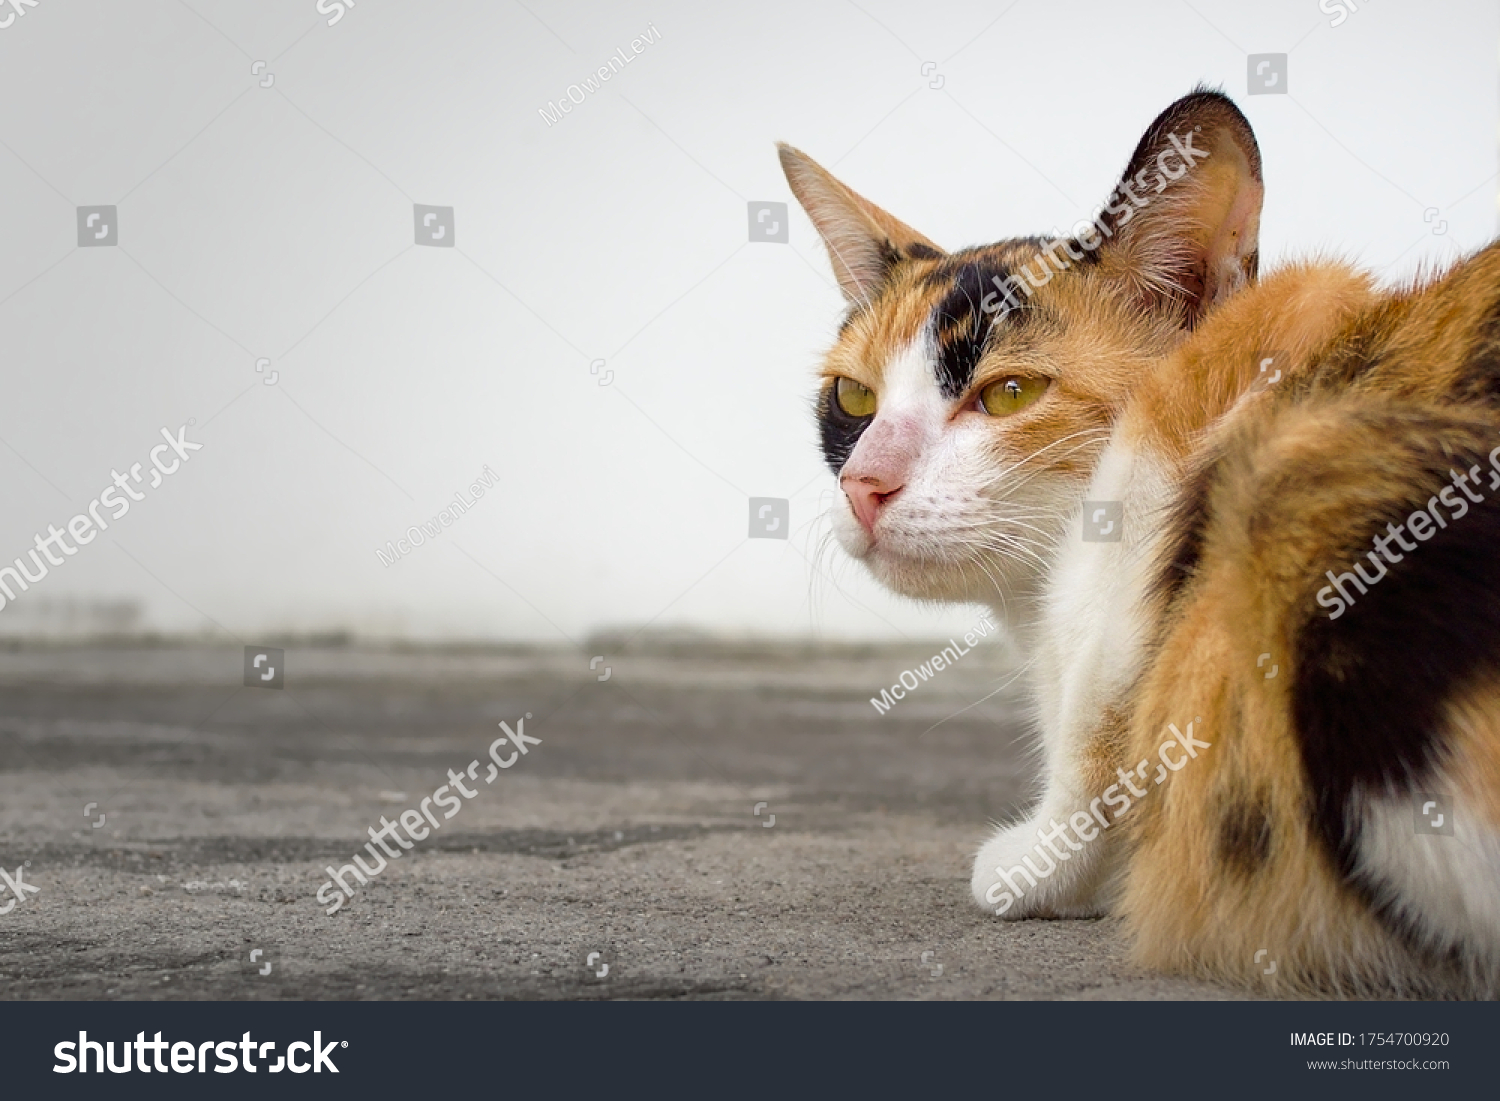 stock-photo-adorable-female-domestic-cat